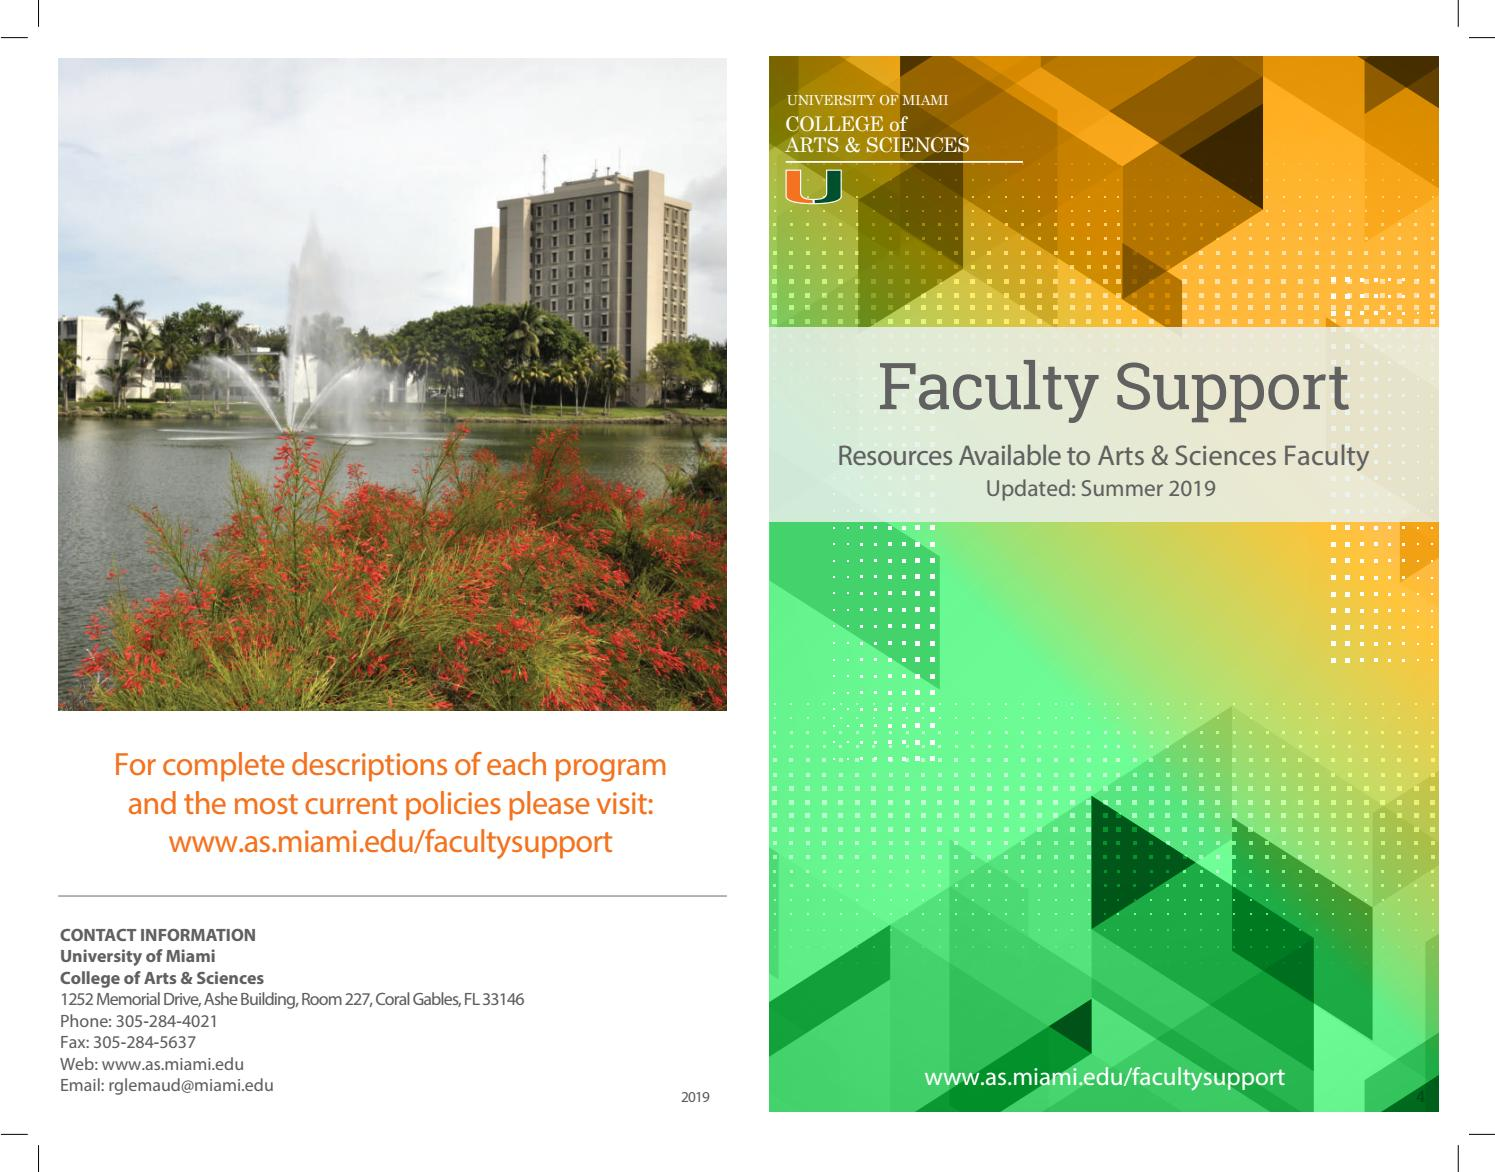 Faculty Support College Of Arts And Sciences University Of Miami By University Of Miami College Of Arts And Sciences Issuu